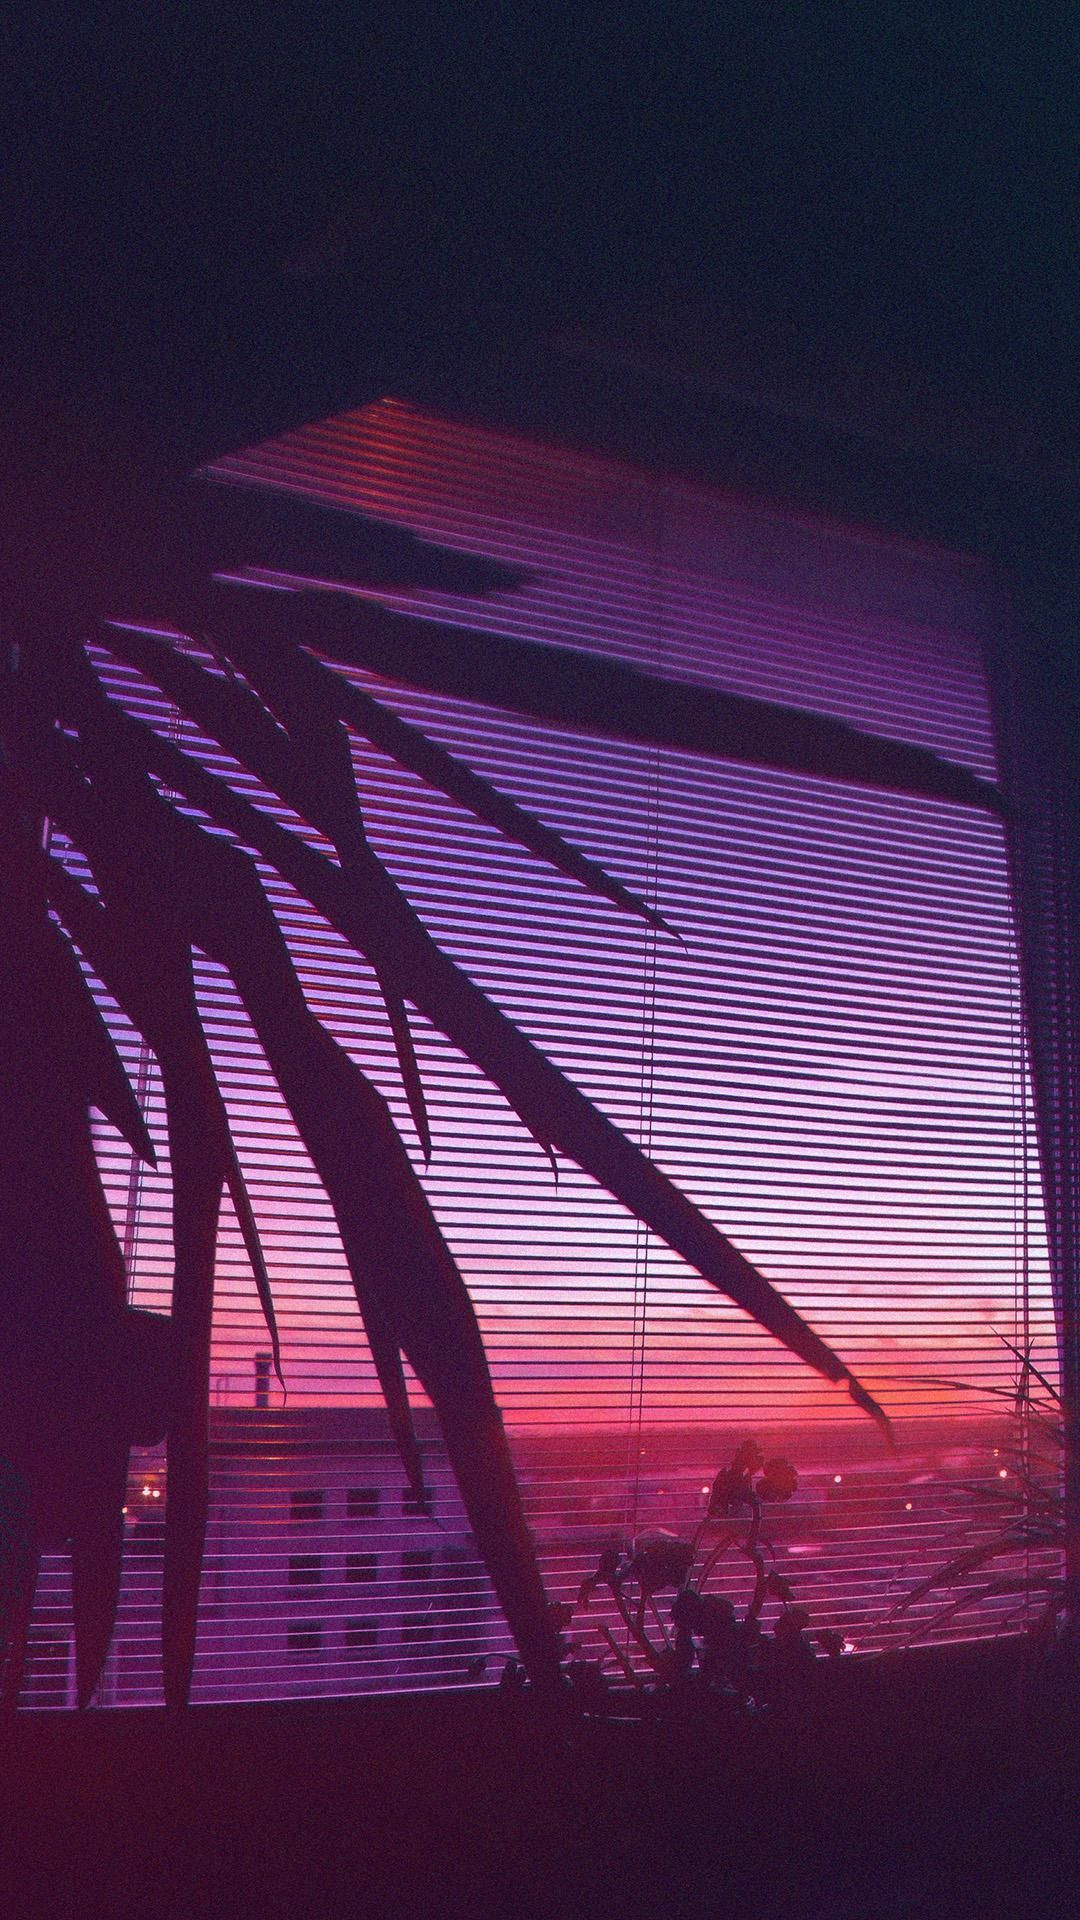 Retro Sunset Aesthetic Wallpapers Wallpaper Cave